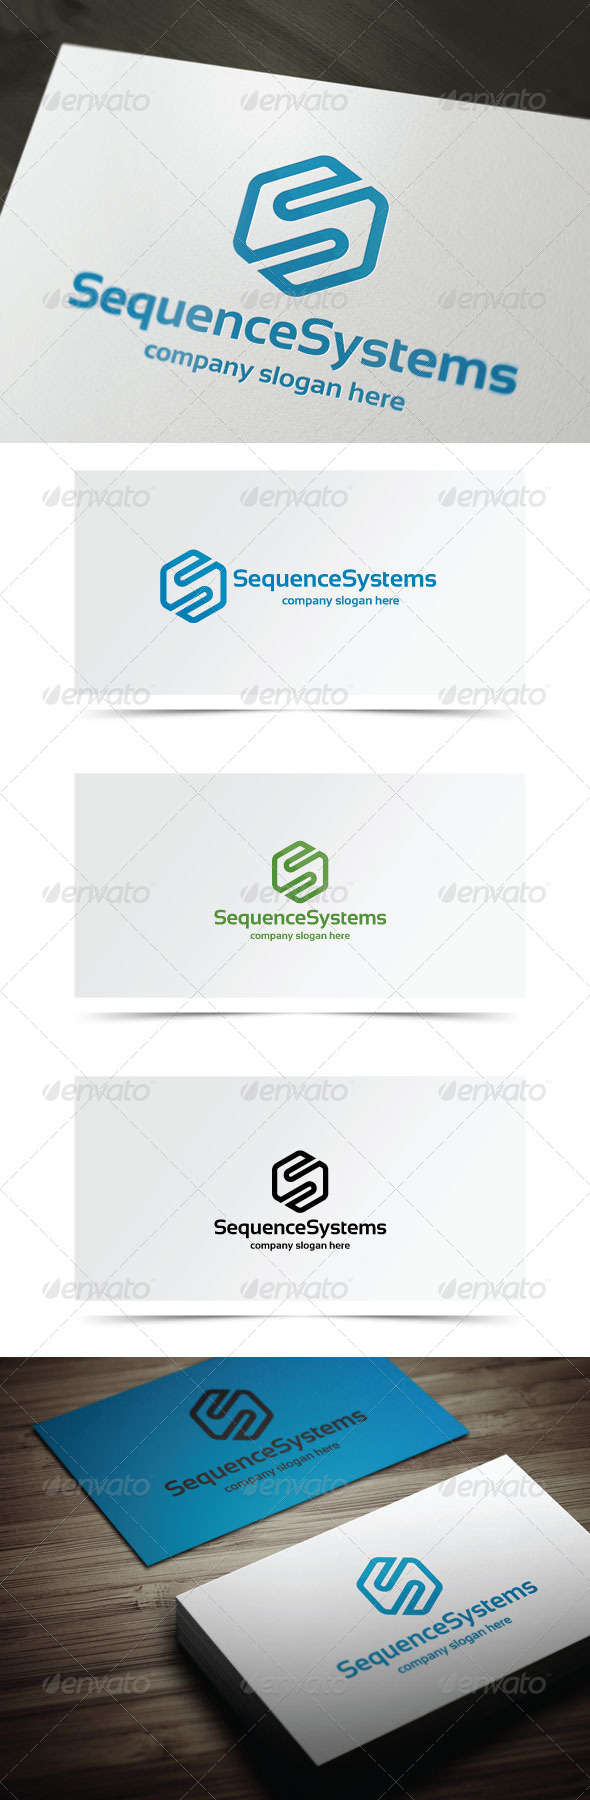 Sequence Systems - Letters Logo Templates